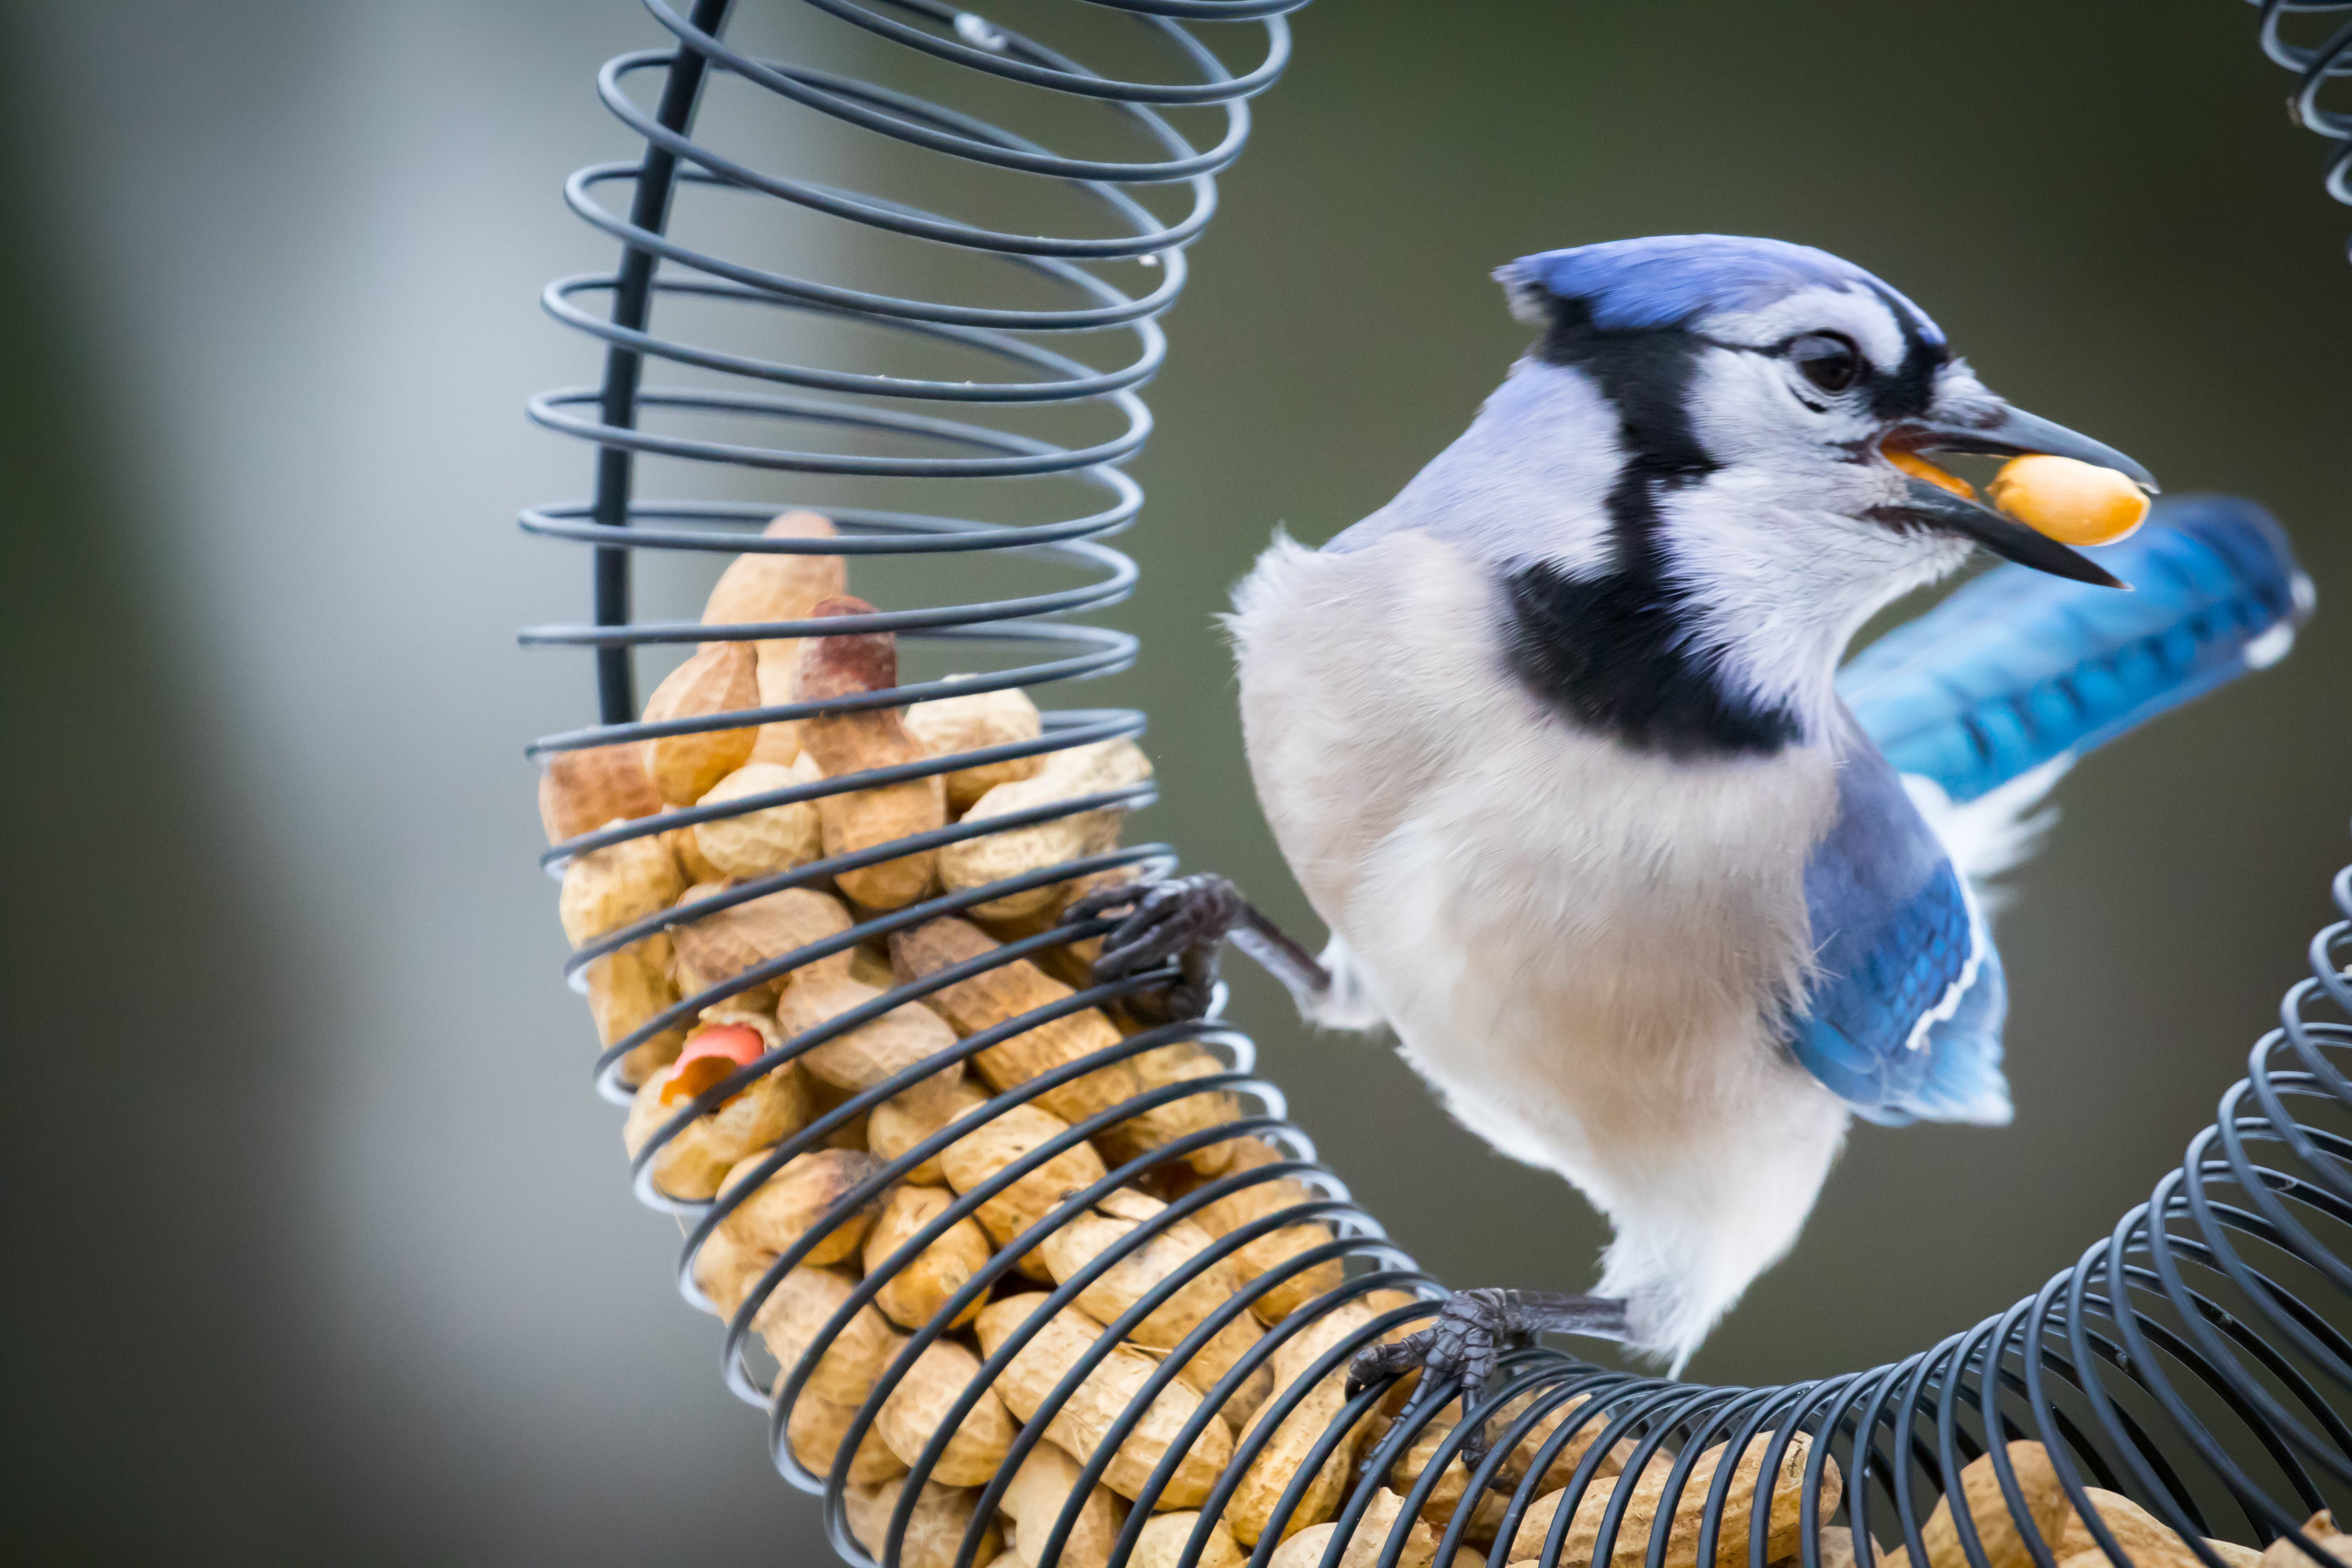 White and Blue Bird Eating Nuts